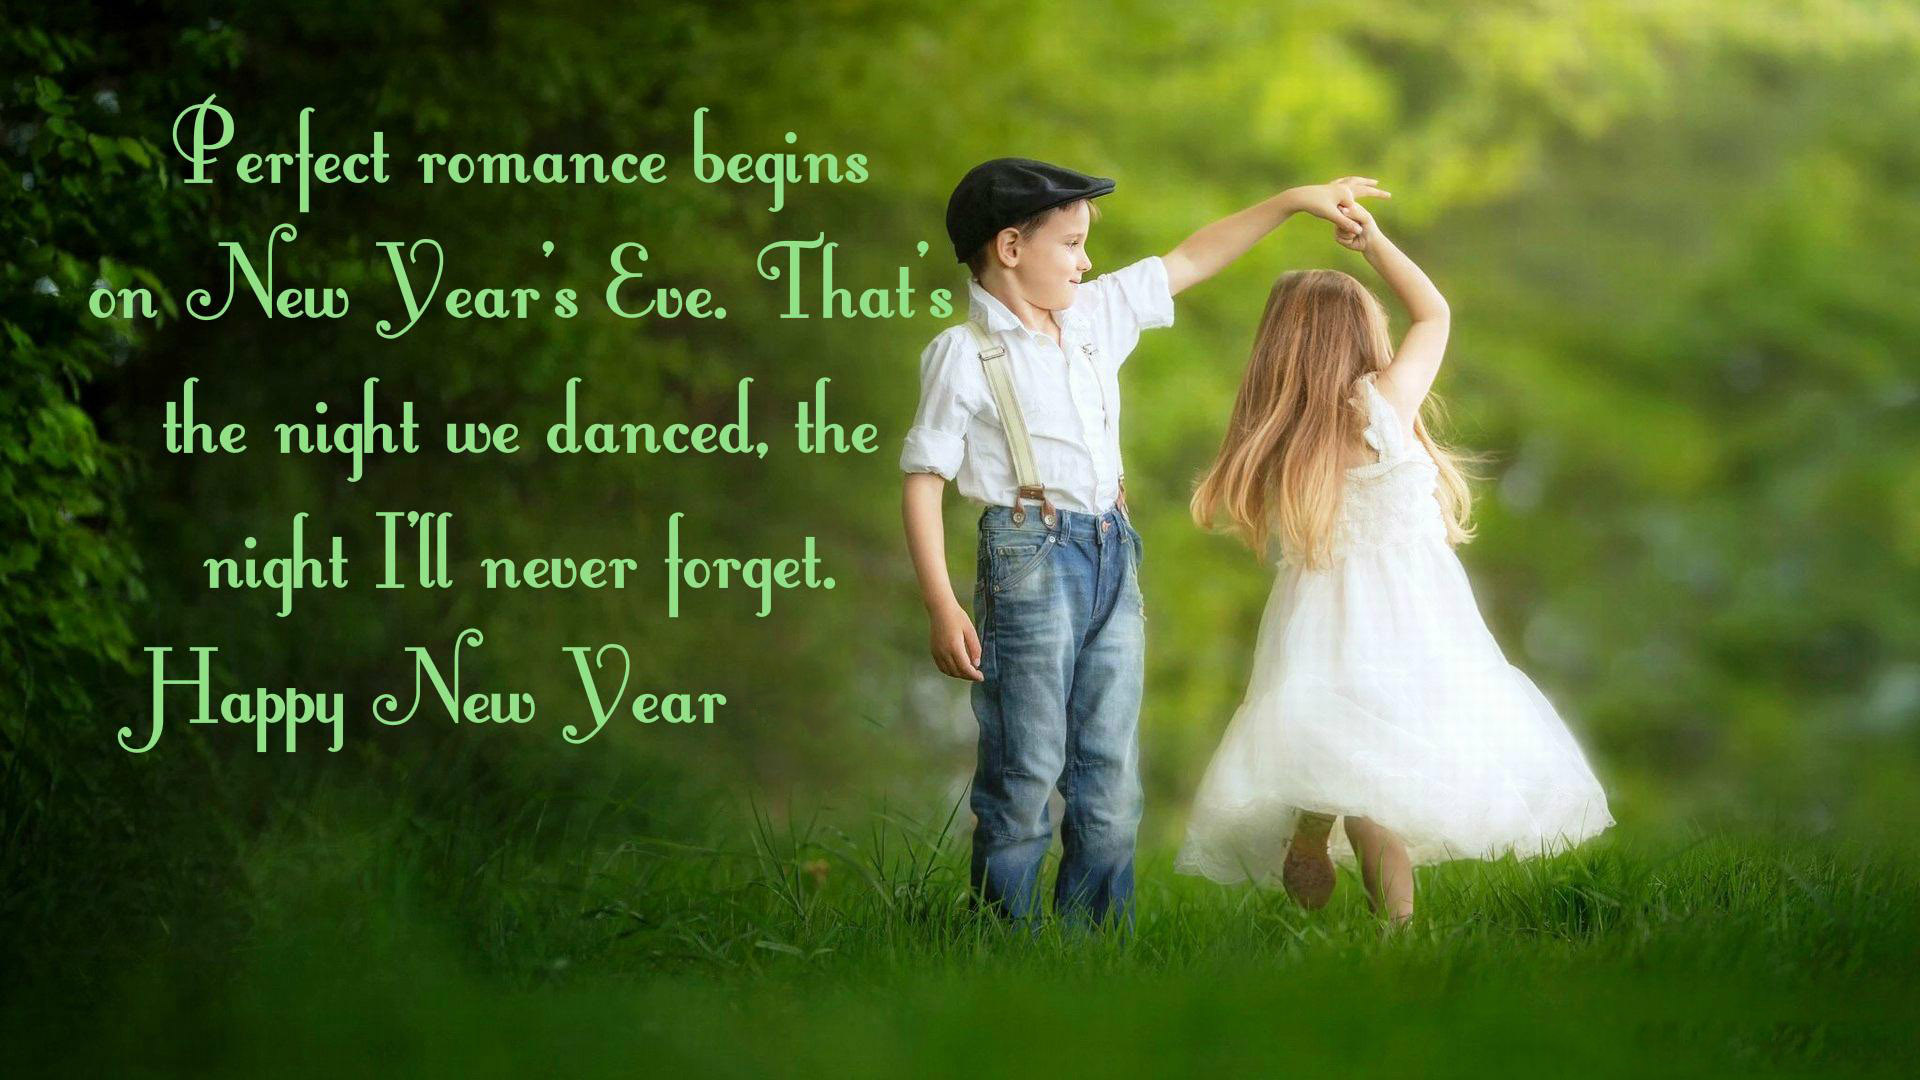 Happy New Year Wishes For Love Romantic Wallpaper